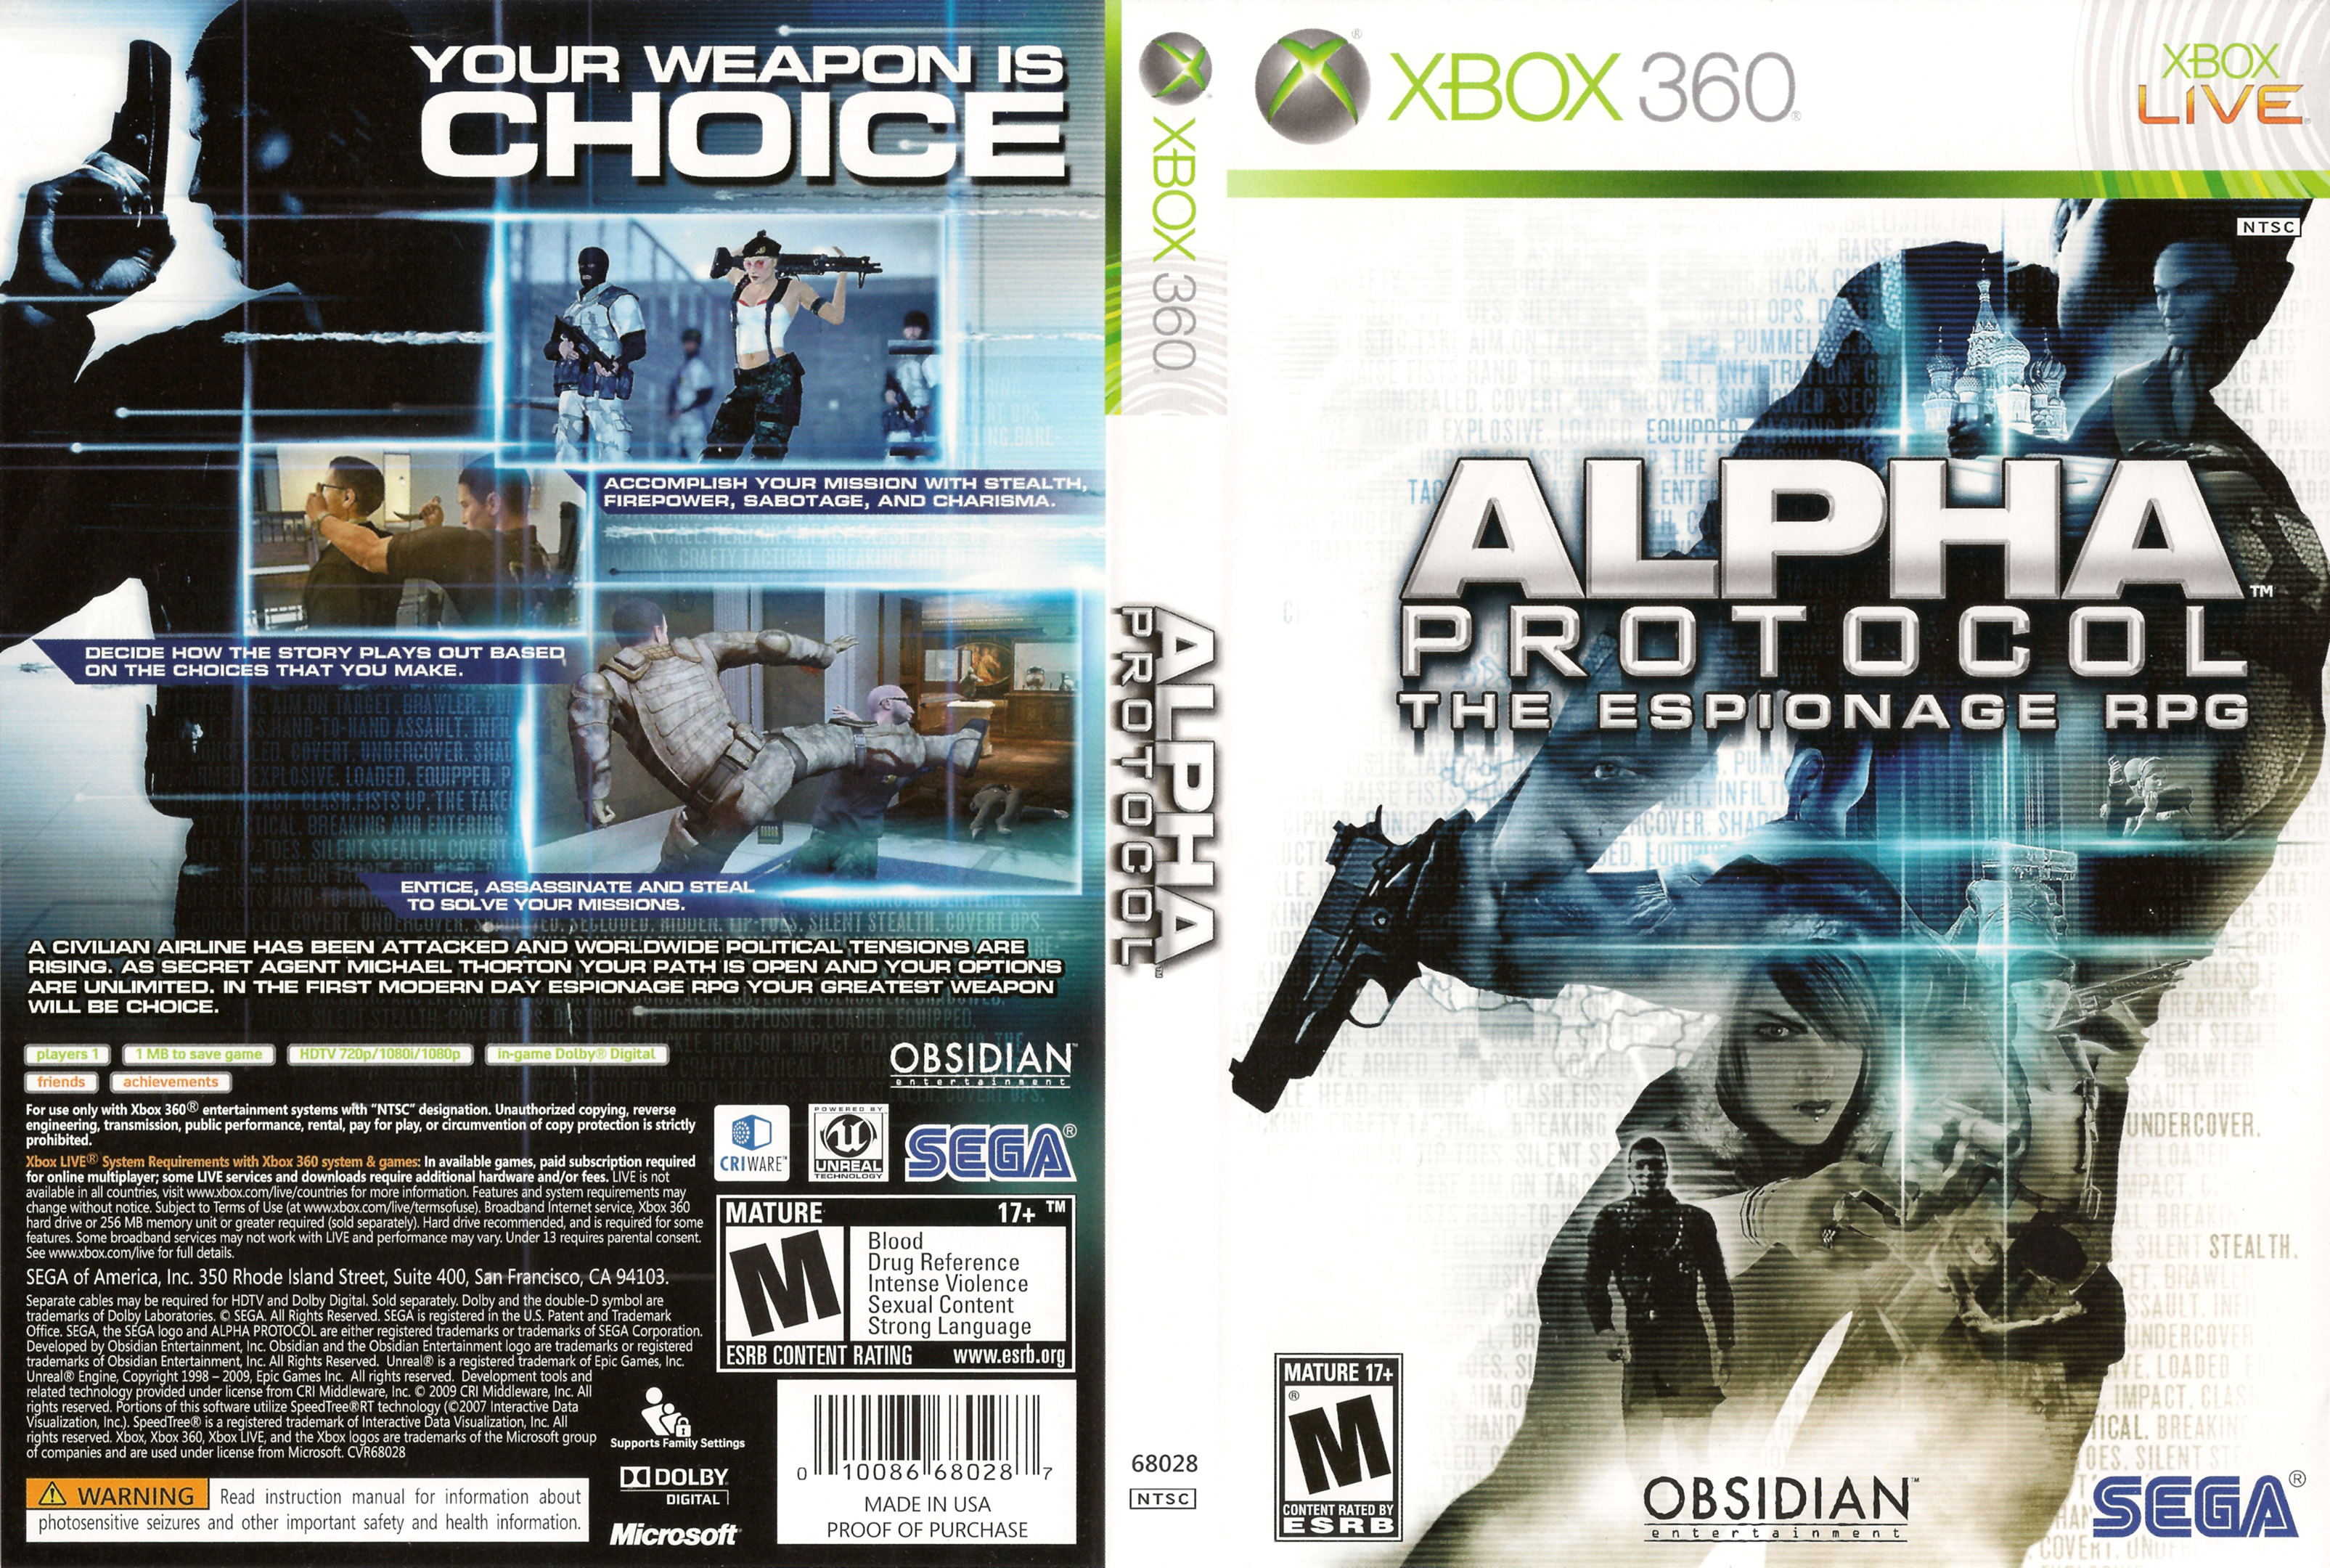 360: ALPHA PROTOCOL THE ESPIONA RPG (GAME)